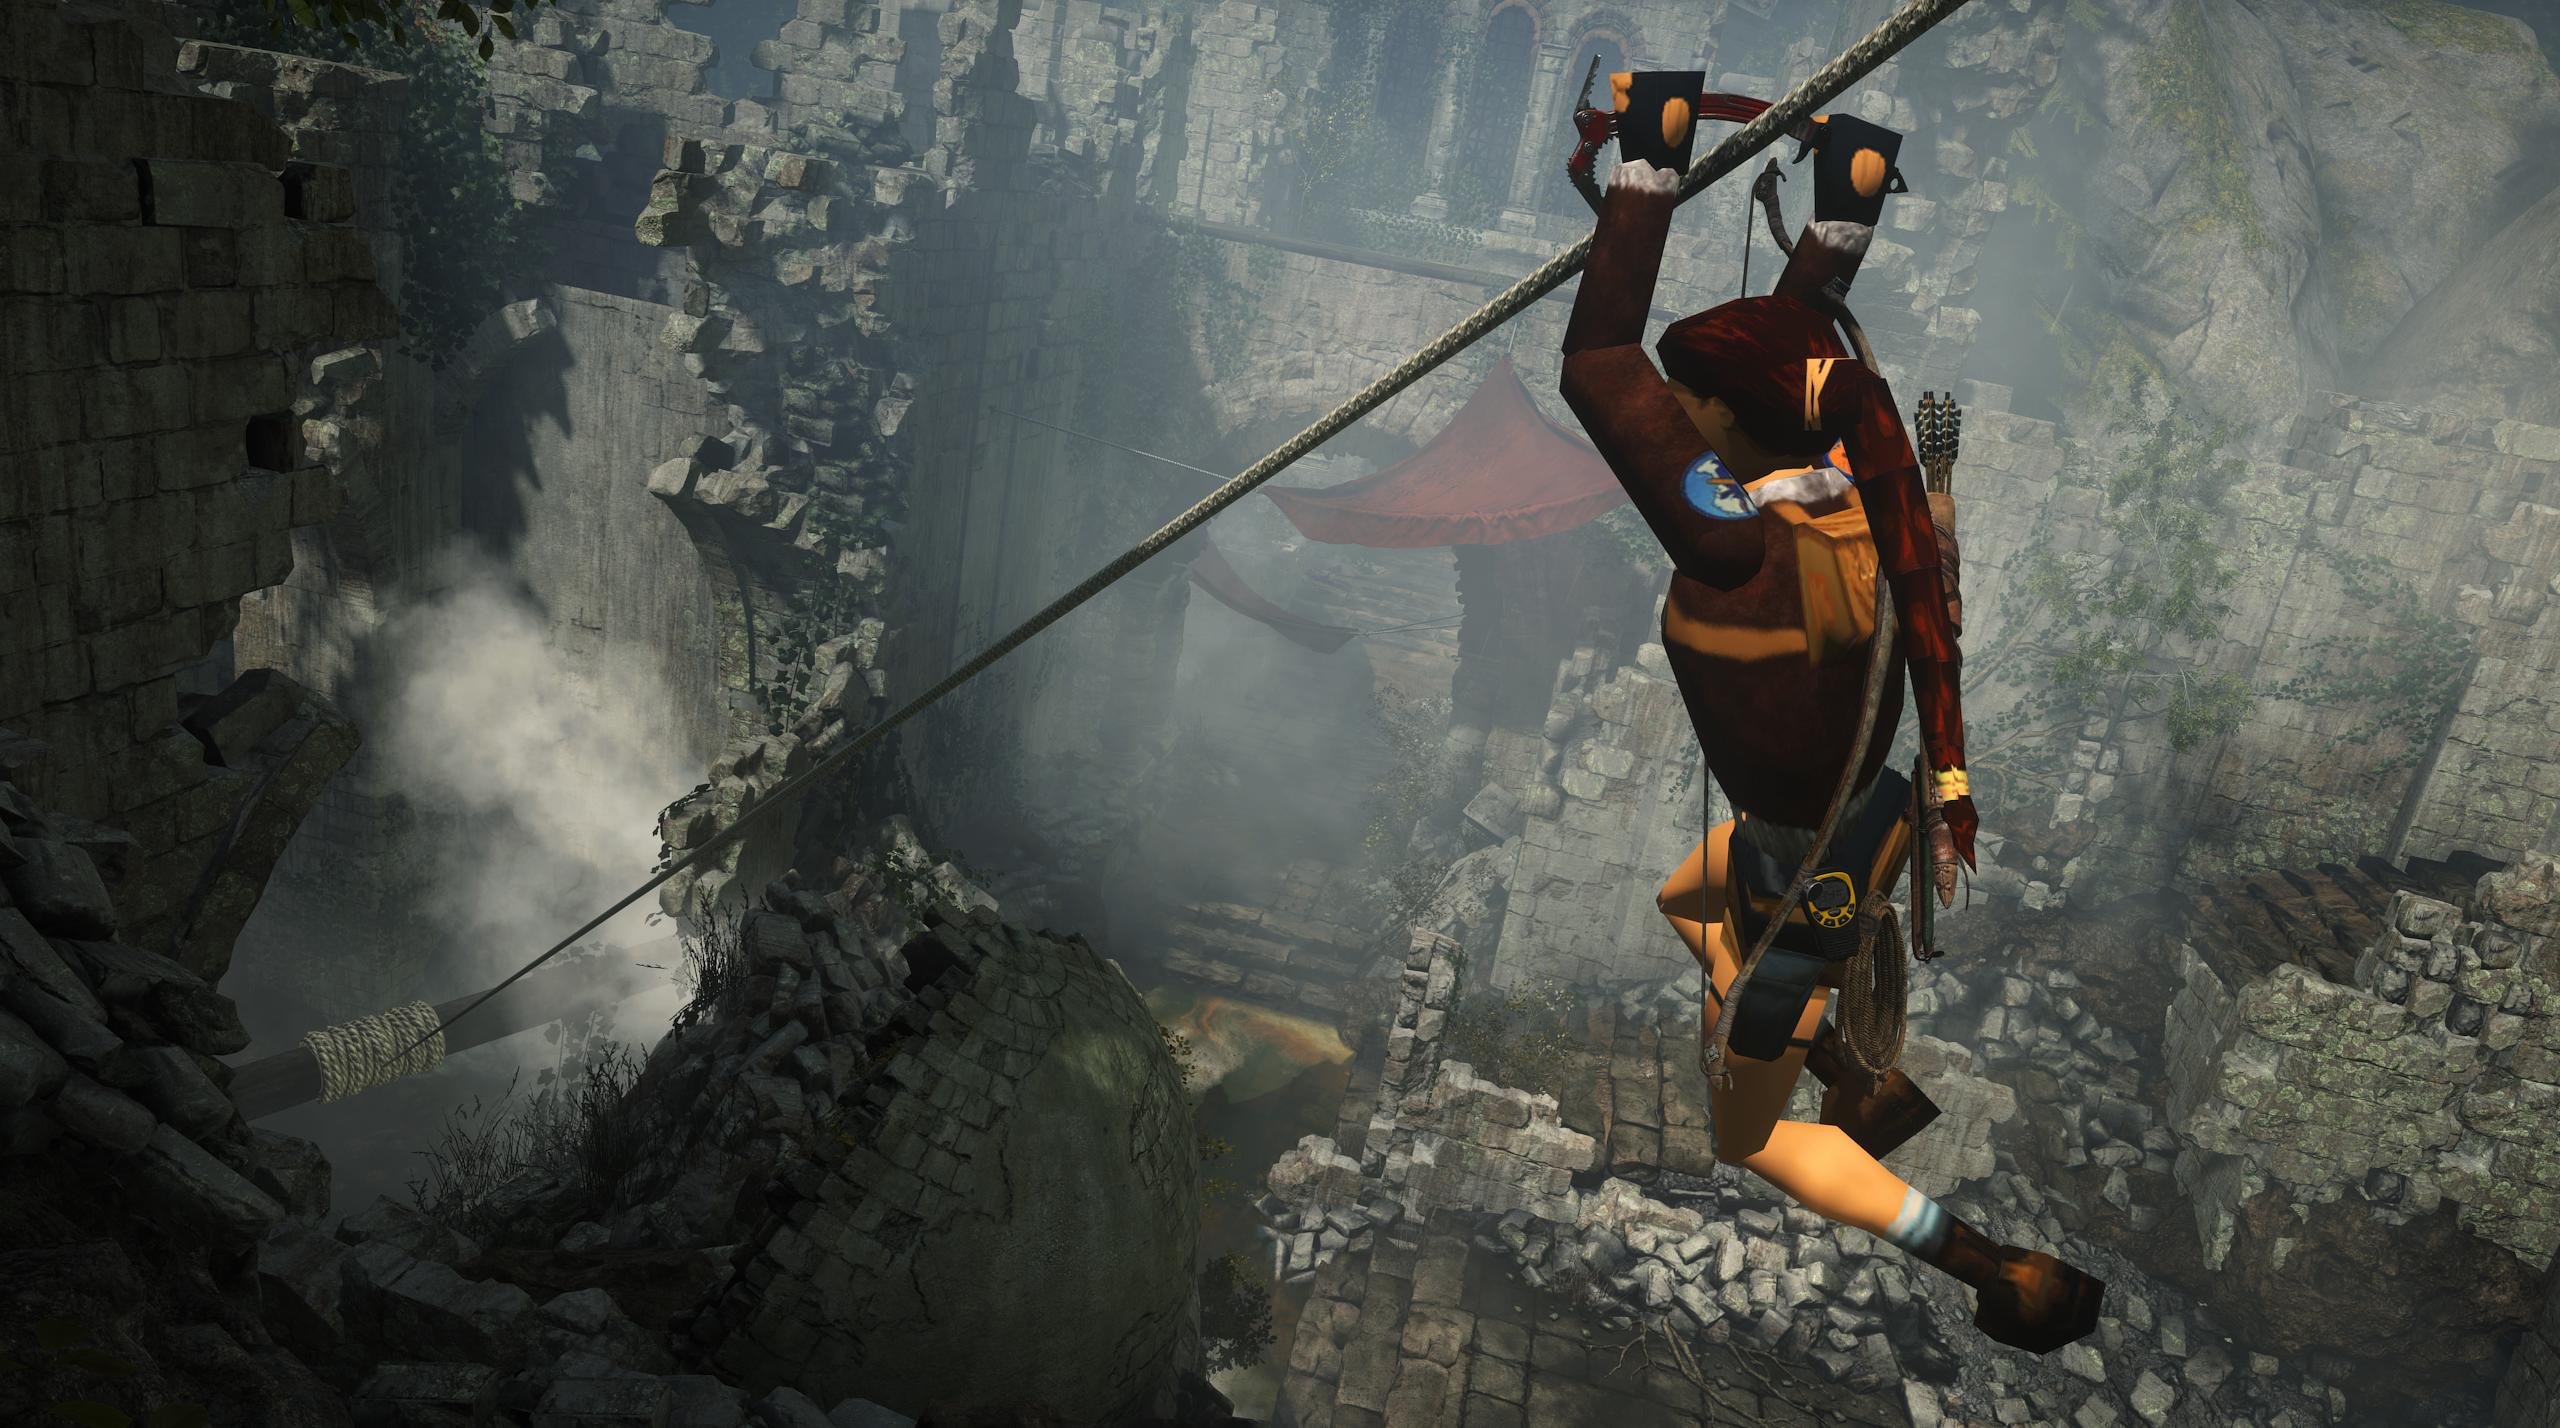 Take A Look At New Rise Of The Tomb Raider 20 Year Celebration